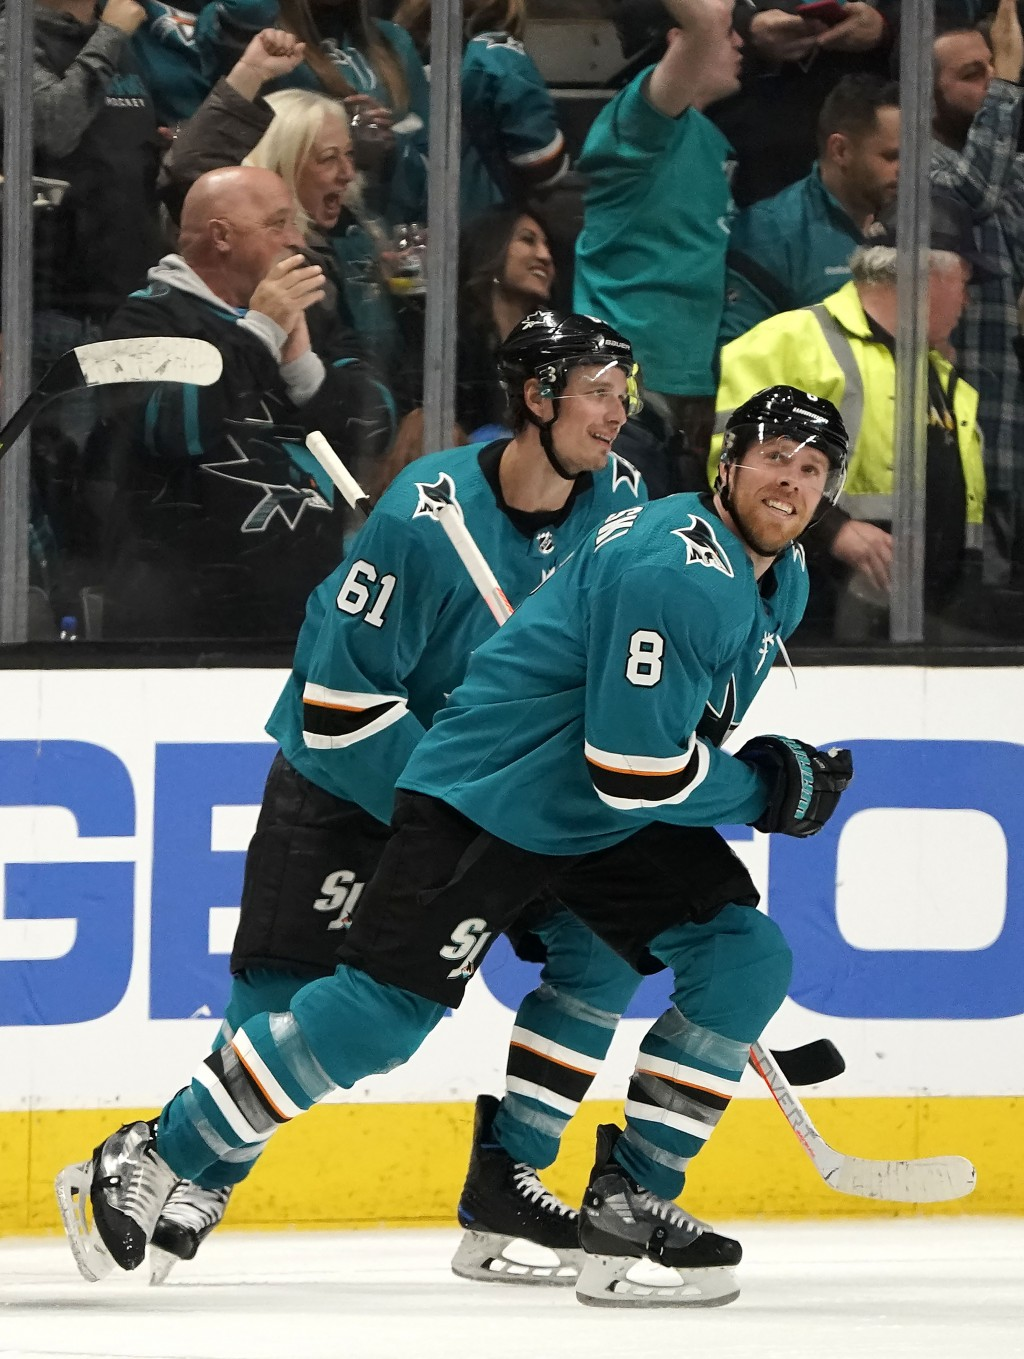 San Jose Sharks center Joe Pavelski (8) smiles after scoring a goal against the Arizona Coyotes during the second period of an NHL hockey game in San